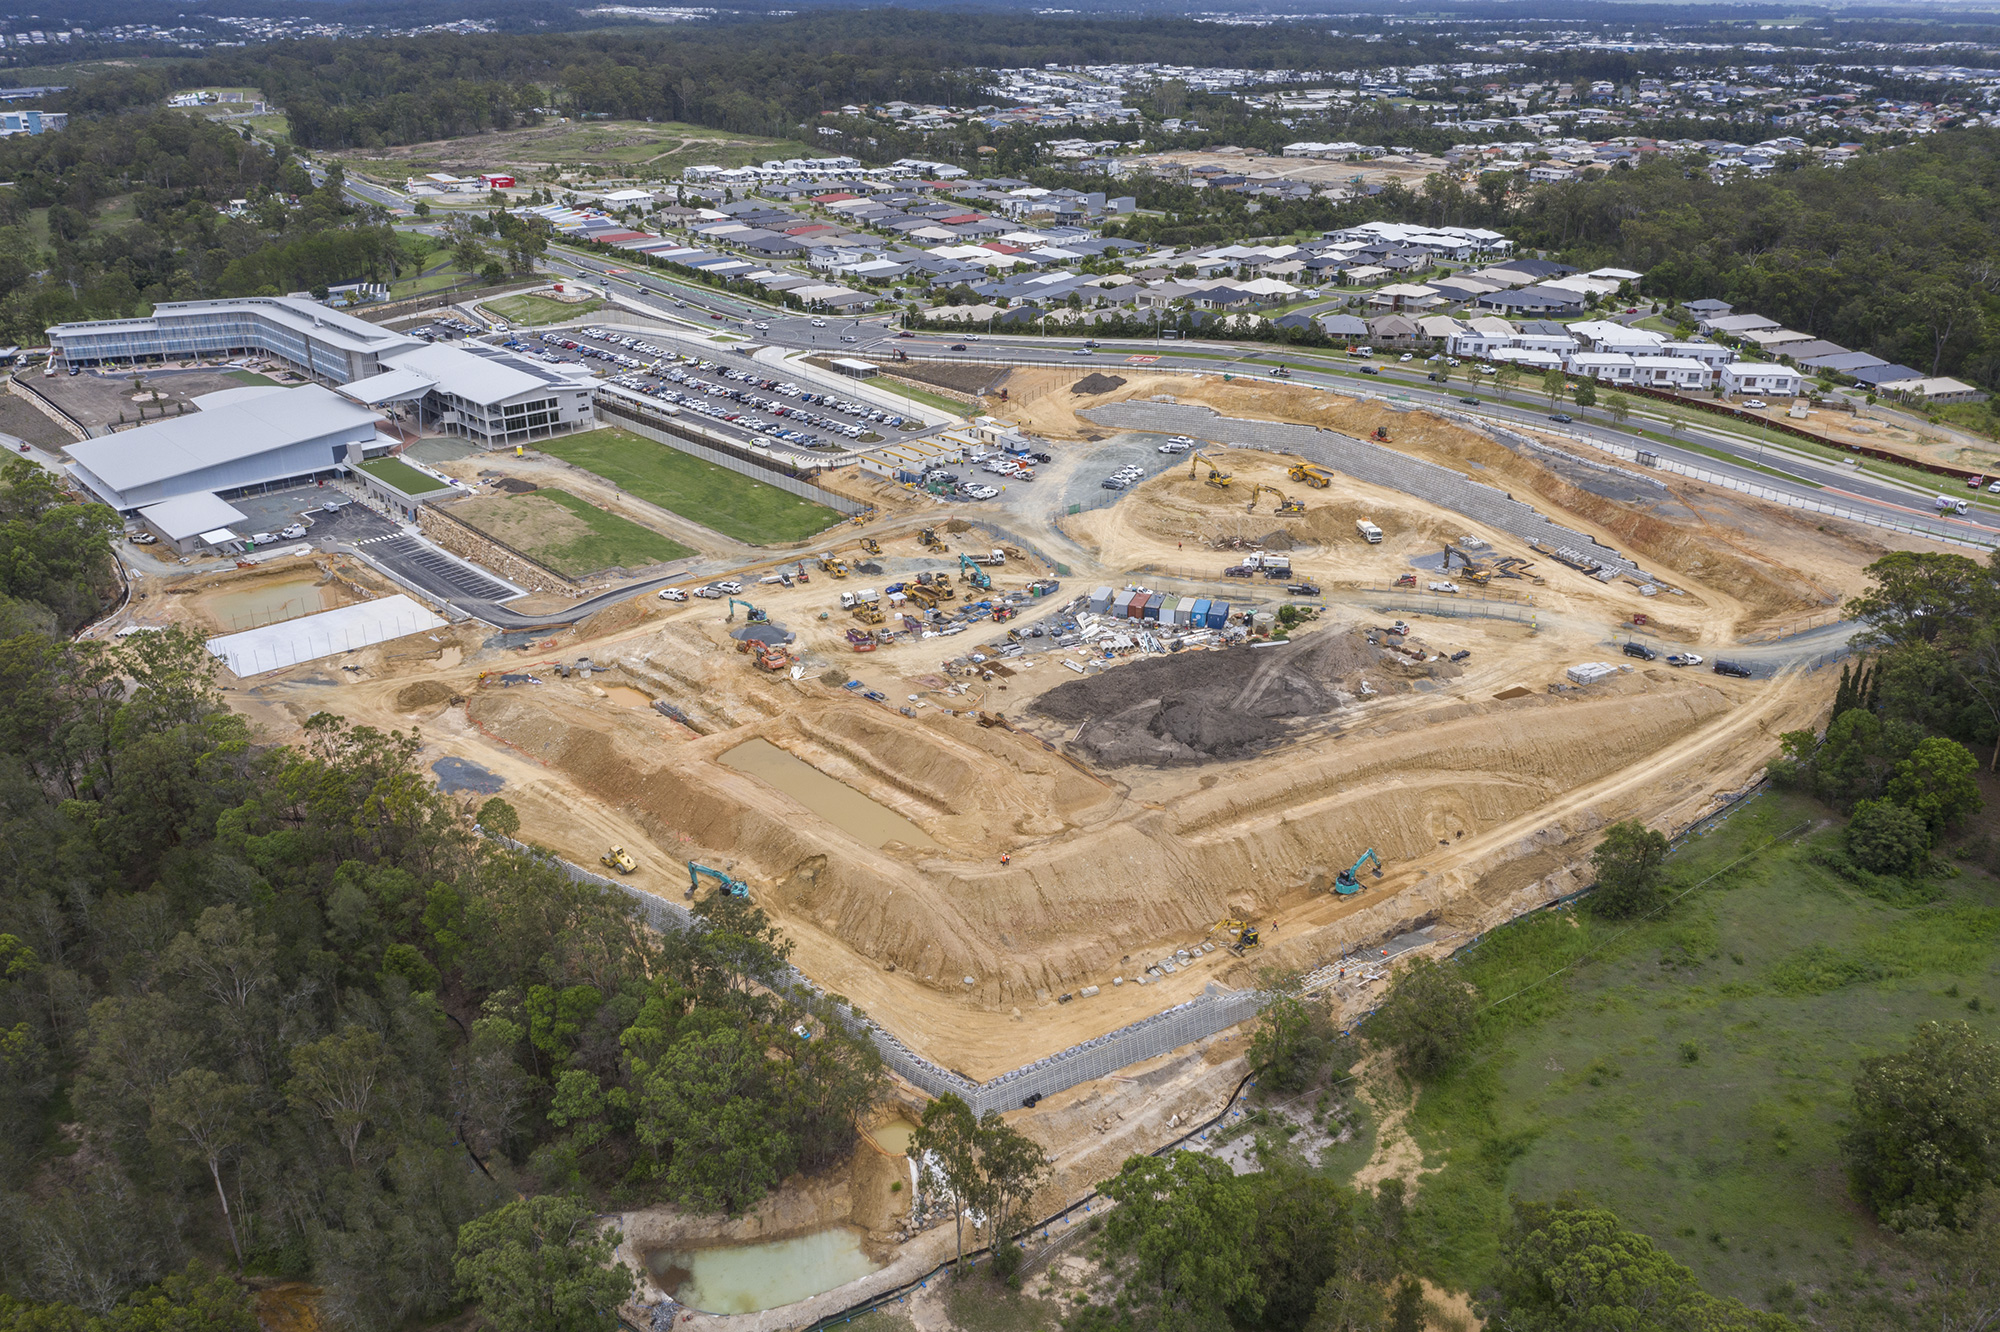 Drone photography for Concrib Pty Ltd - drone photography of wall construction at Coomera